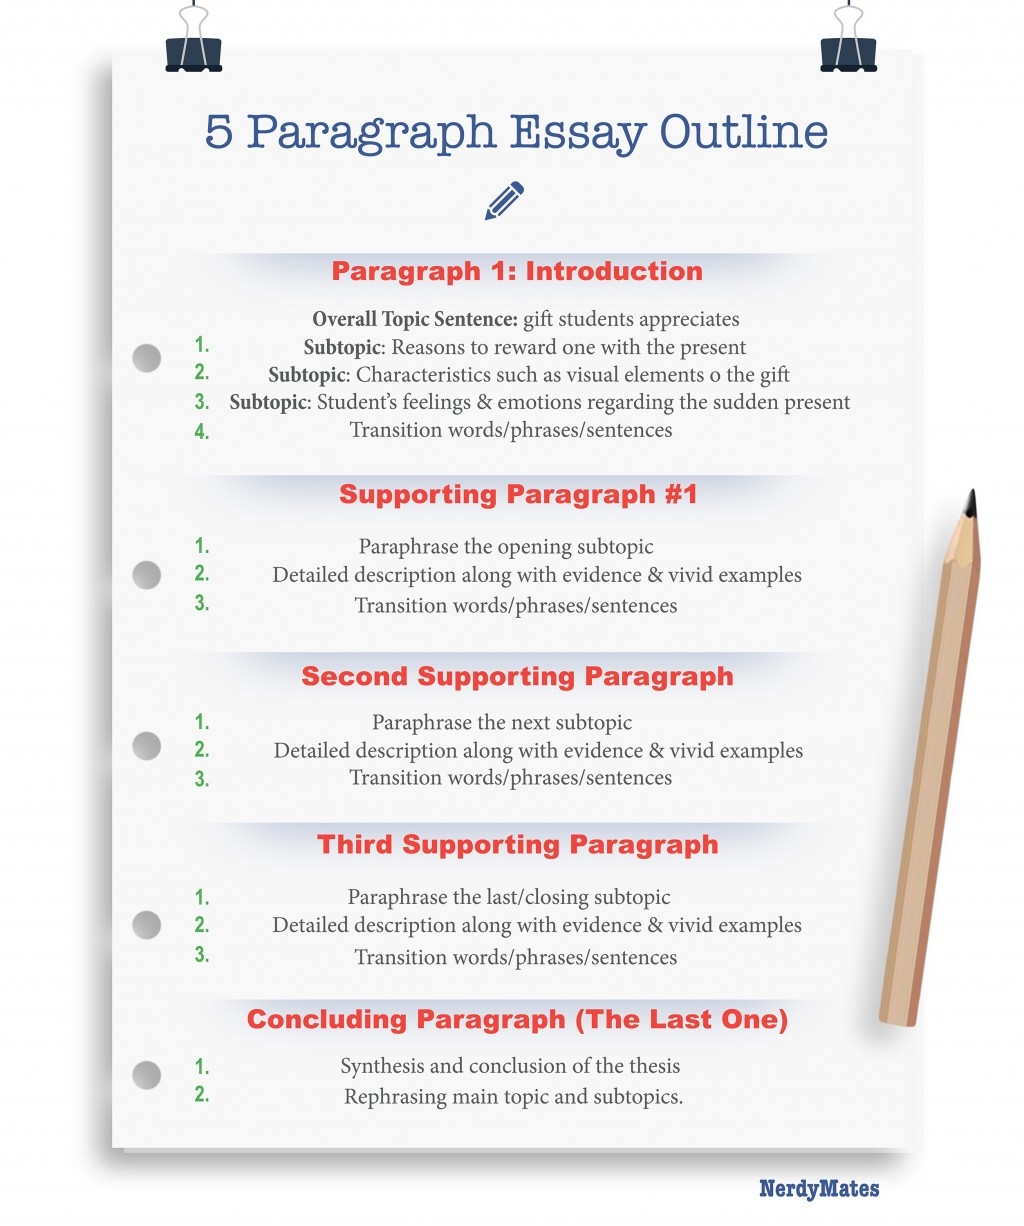 006 Essay Example How To Write Paragraph Writing Help Ou About Yourself Pdf 4th Grade Ppt Outline Do You Middle School In Minutes Unbelievable A 5 30 On Book Large